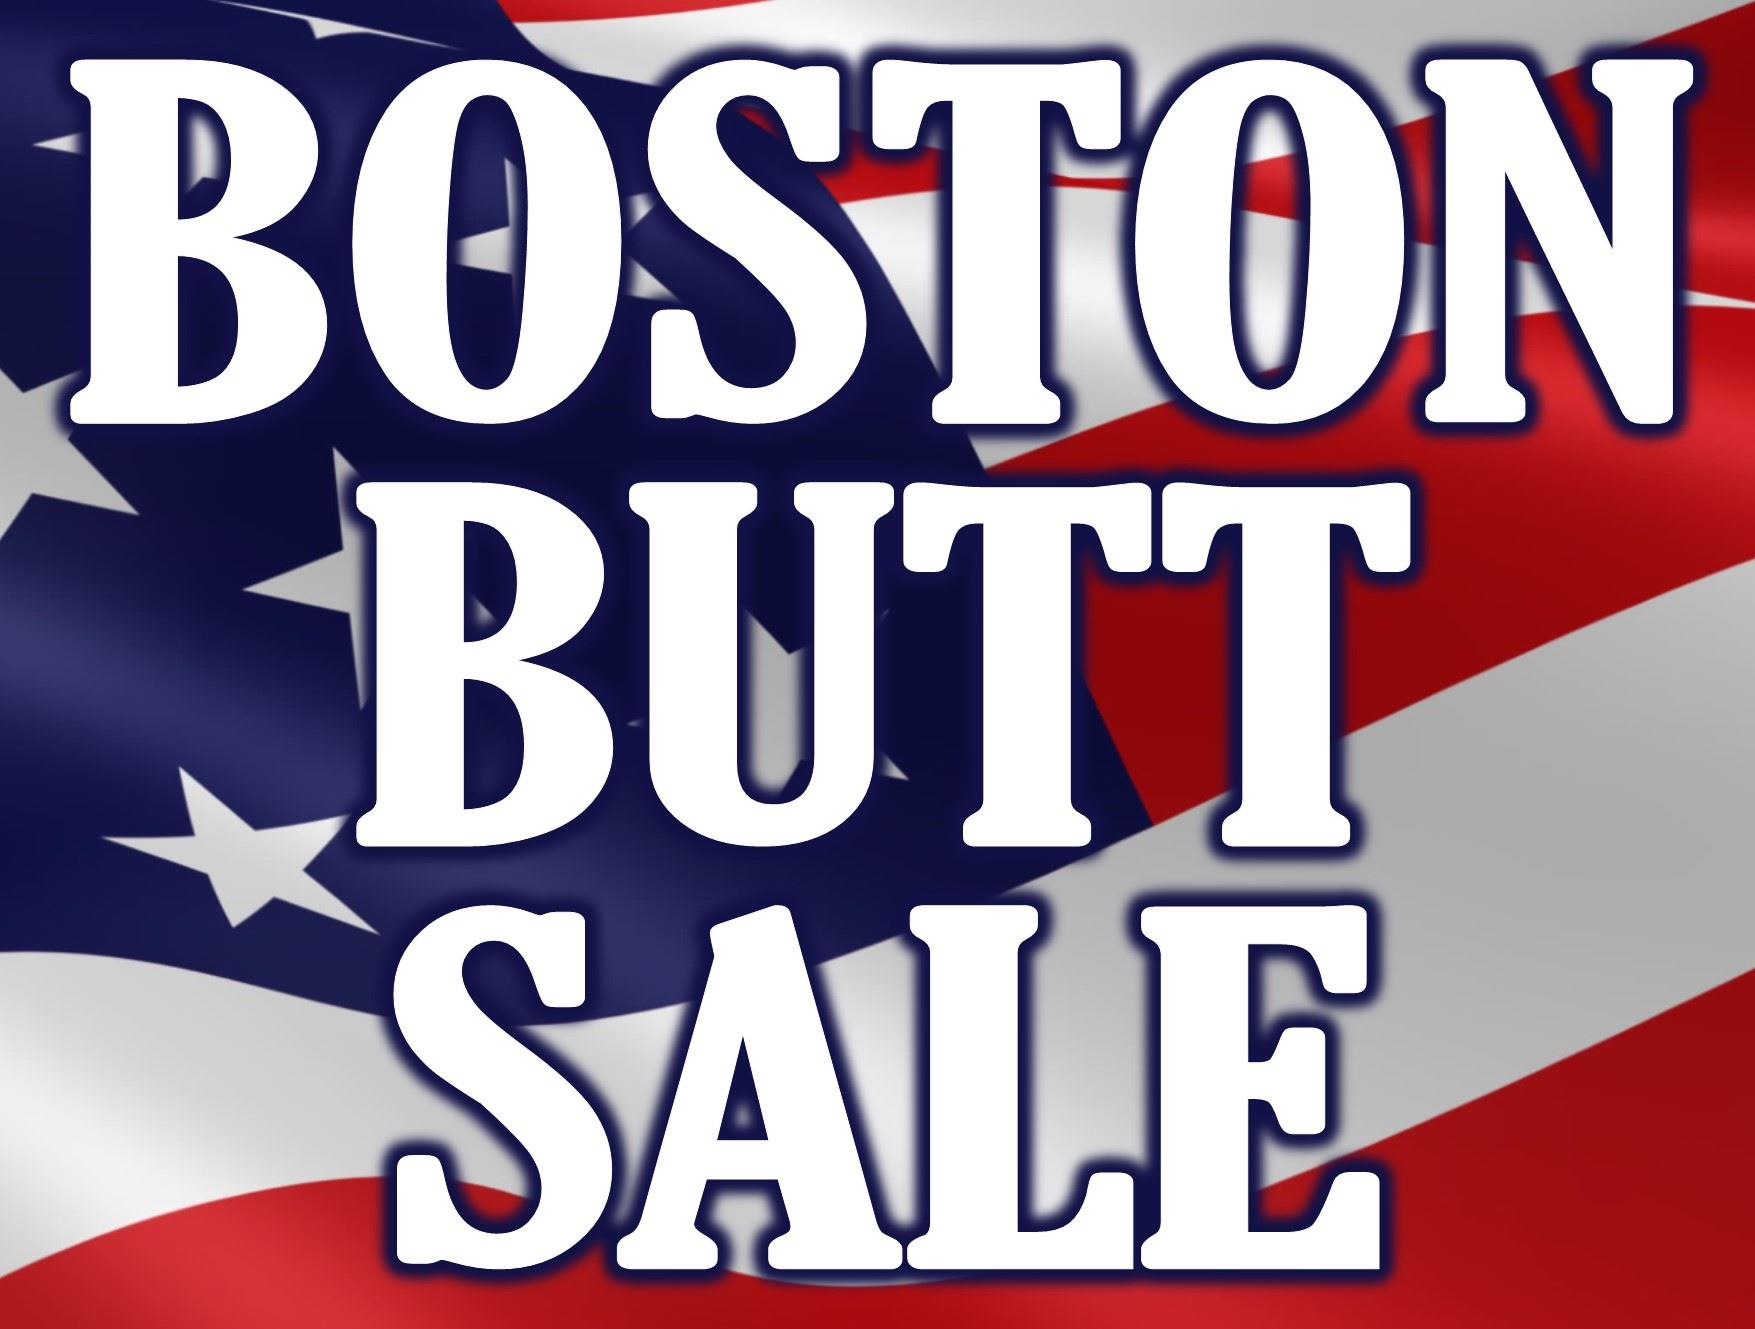 Boston Butt Sale